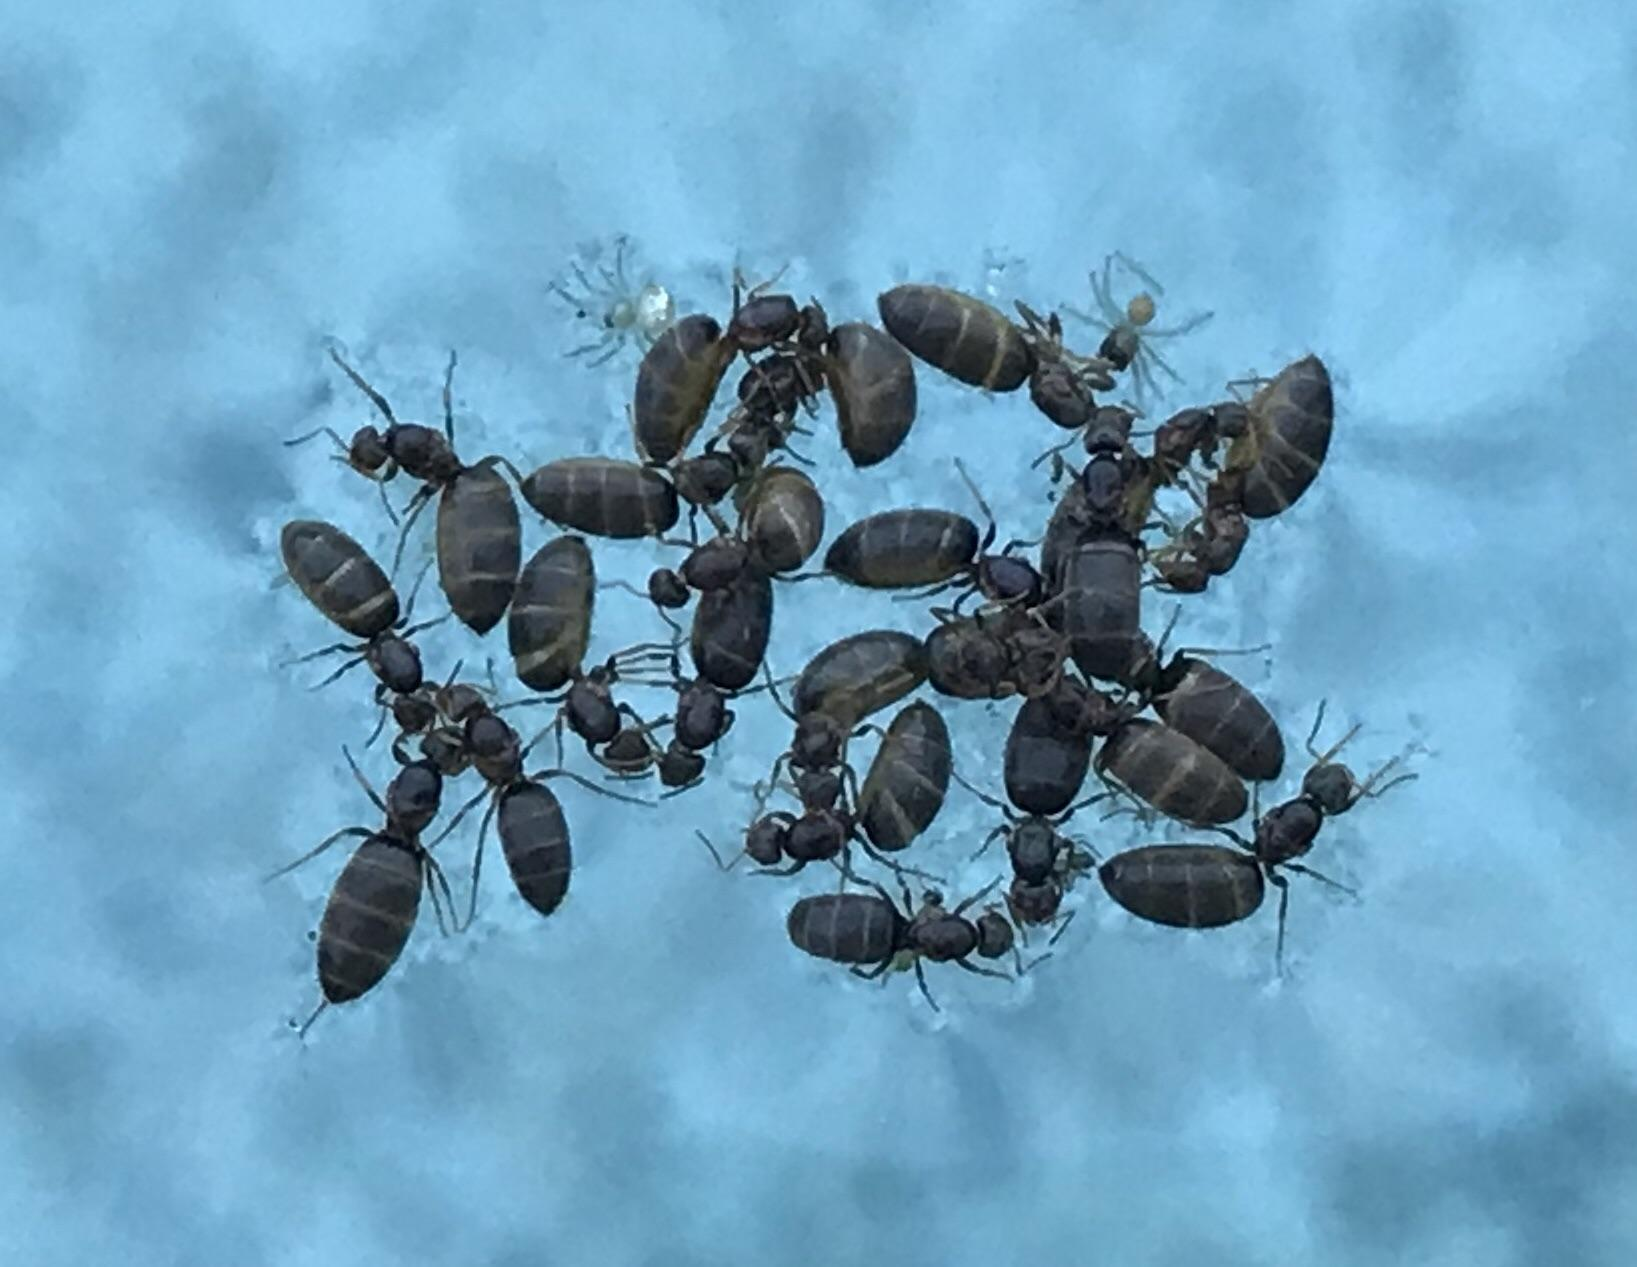 Types of flying ants in the pool